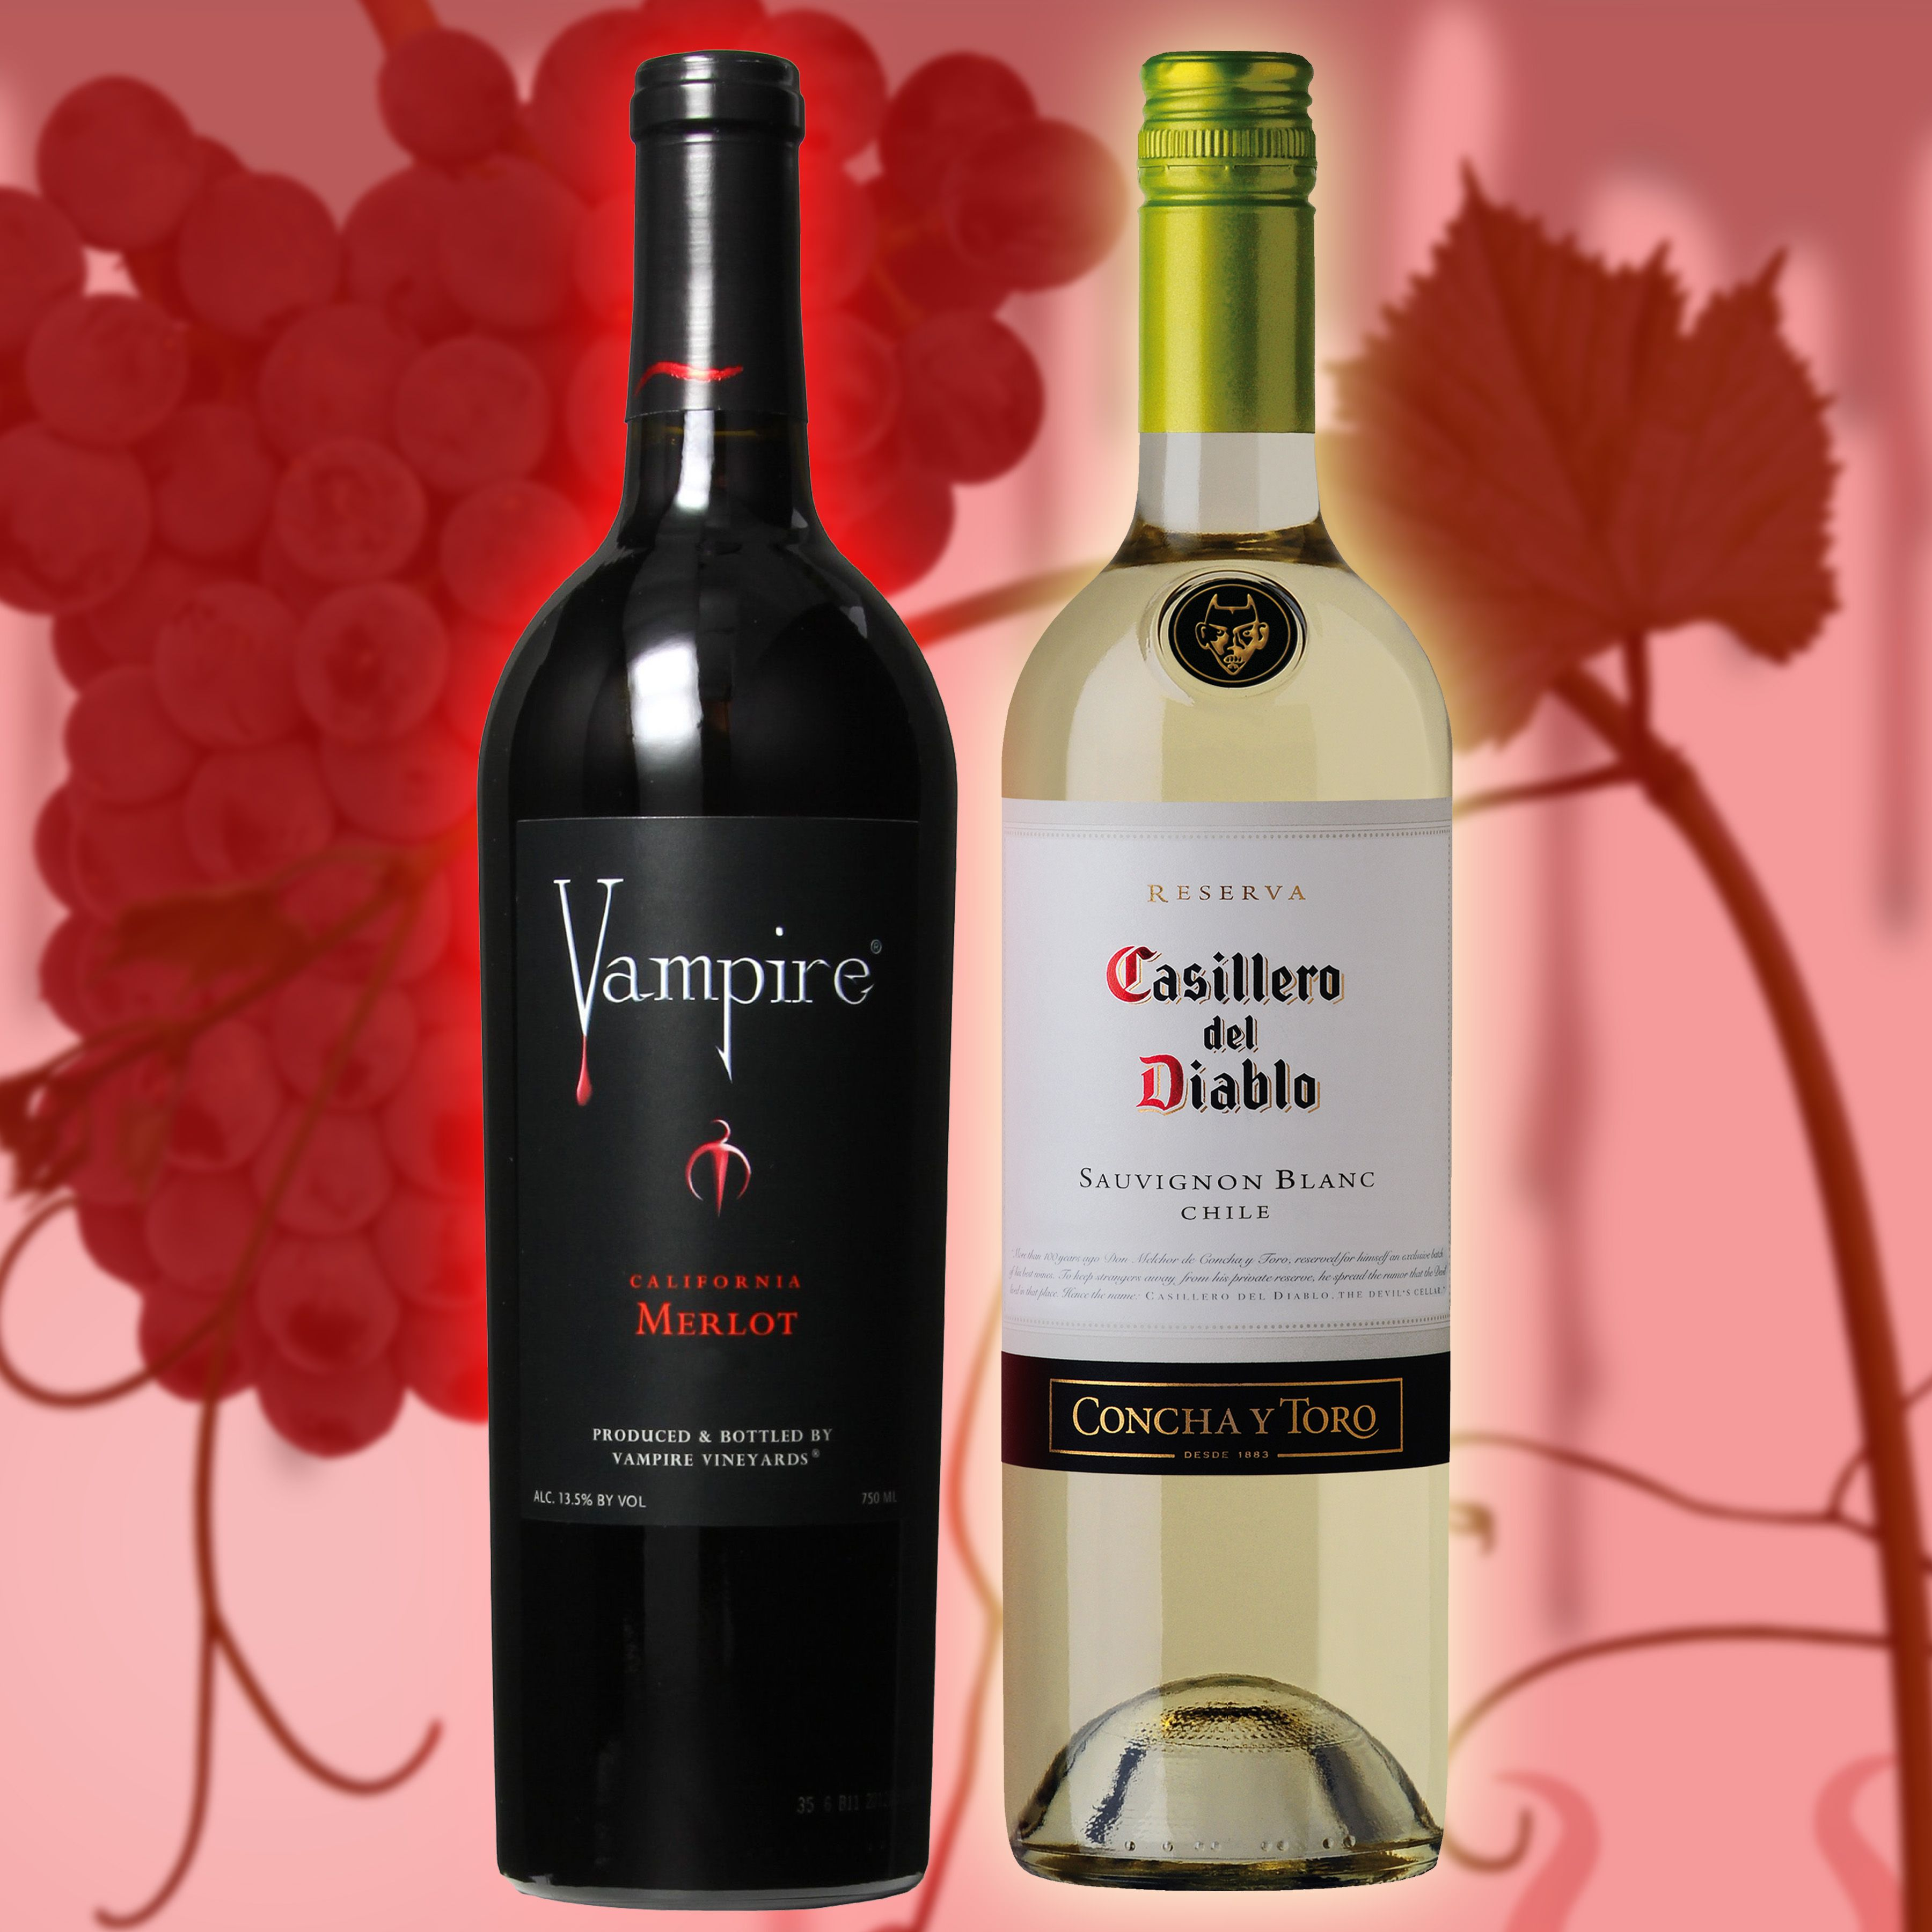 Deals Of The Day Free Shipping 6 Bottles Mix Match Offer Only Applies To Bottles Shown Vampire Merlot 7 67 A Bottle G Bottle Sauvignon Blanc Buy Wine